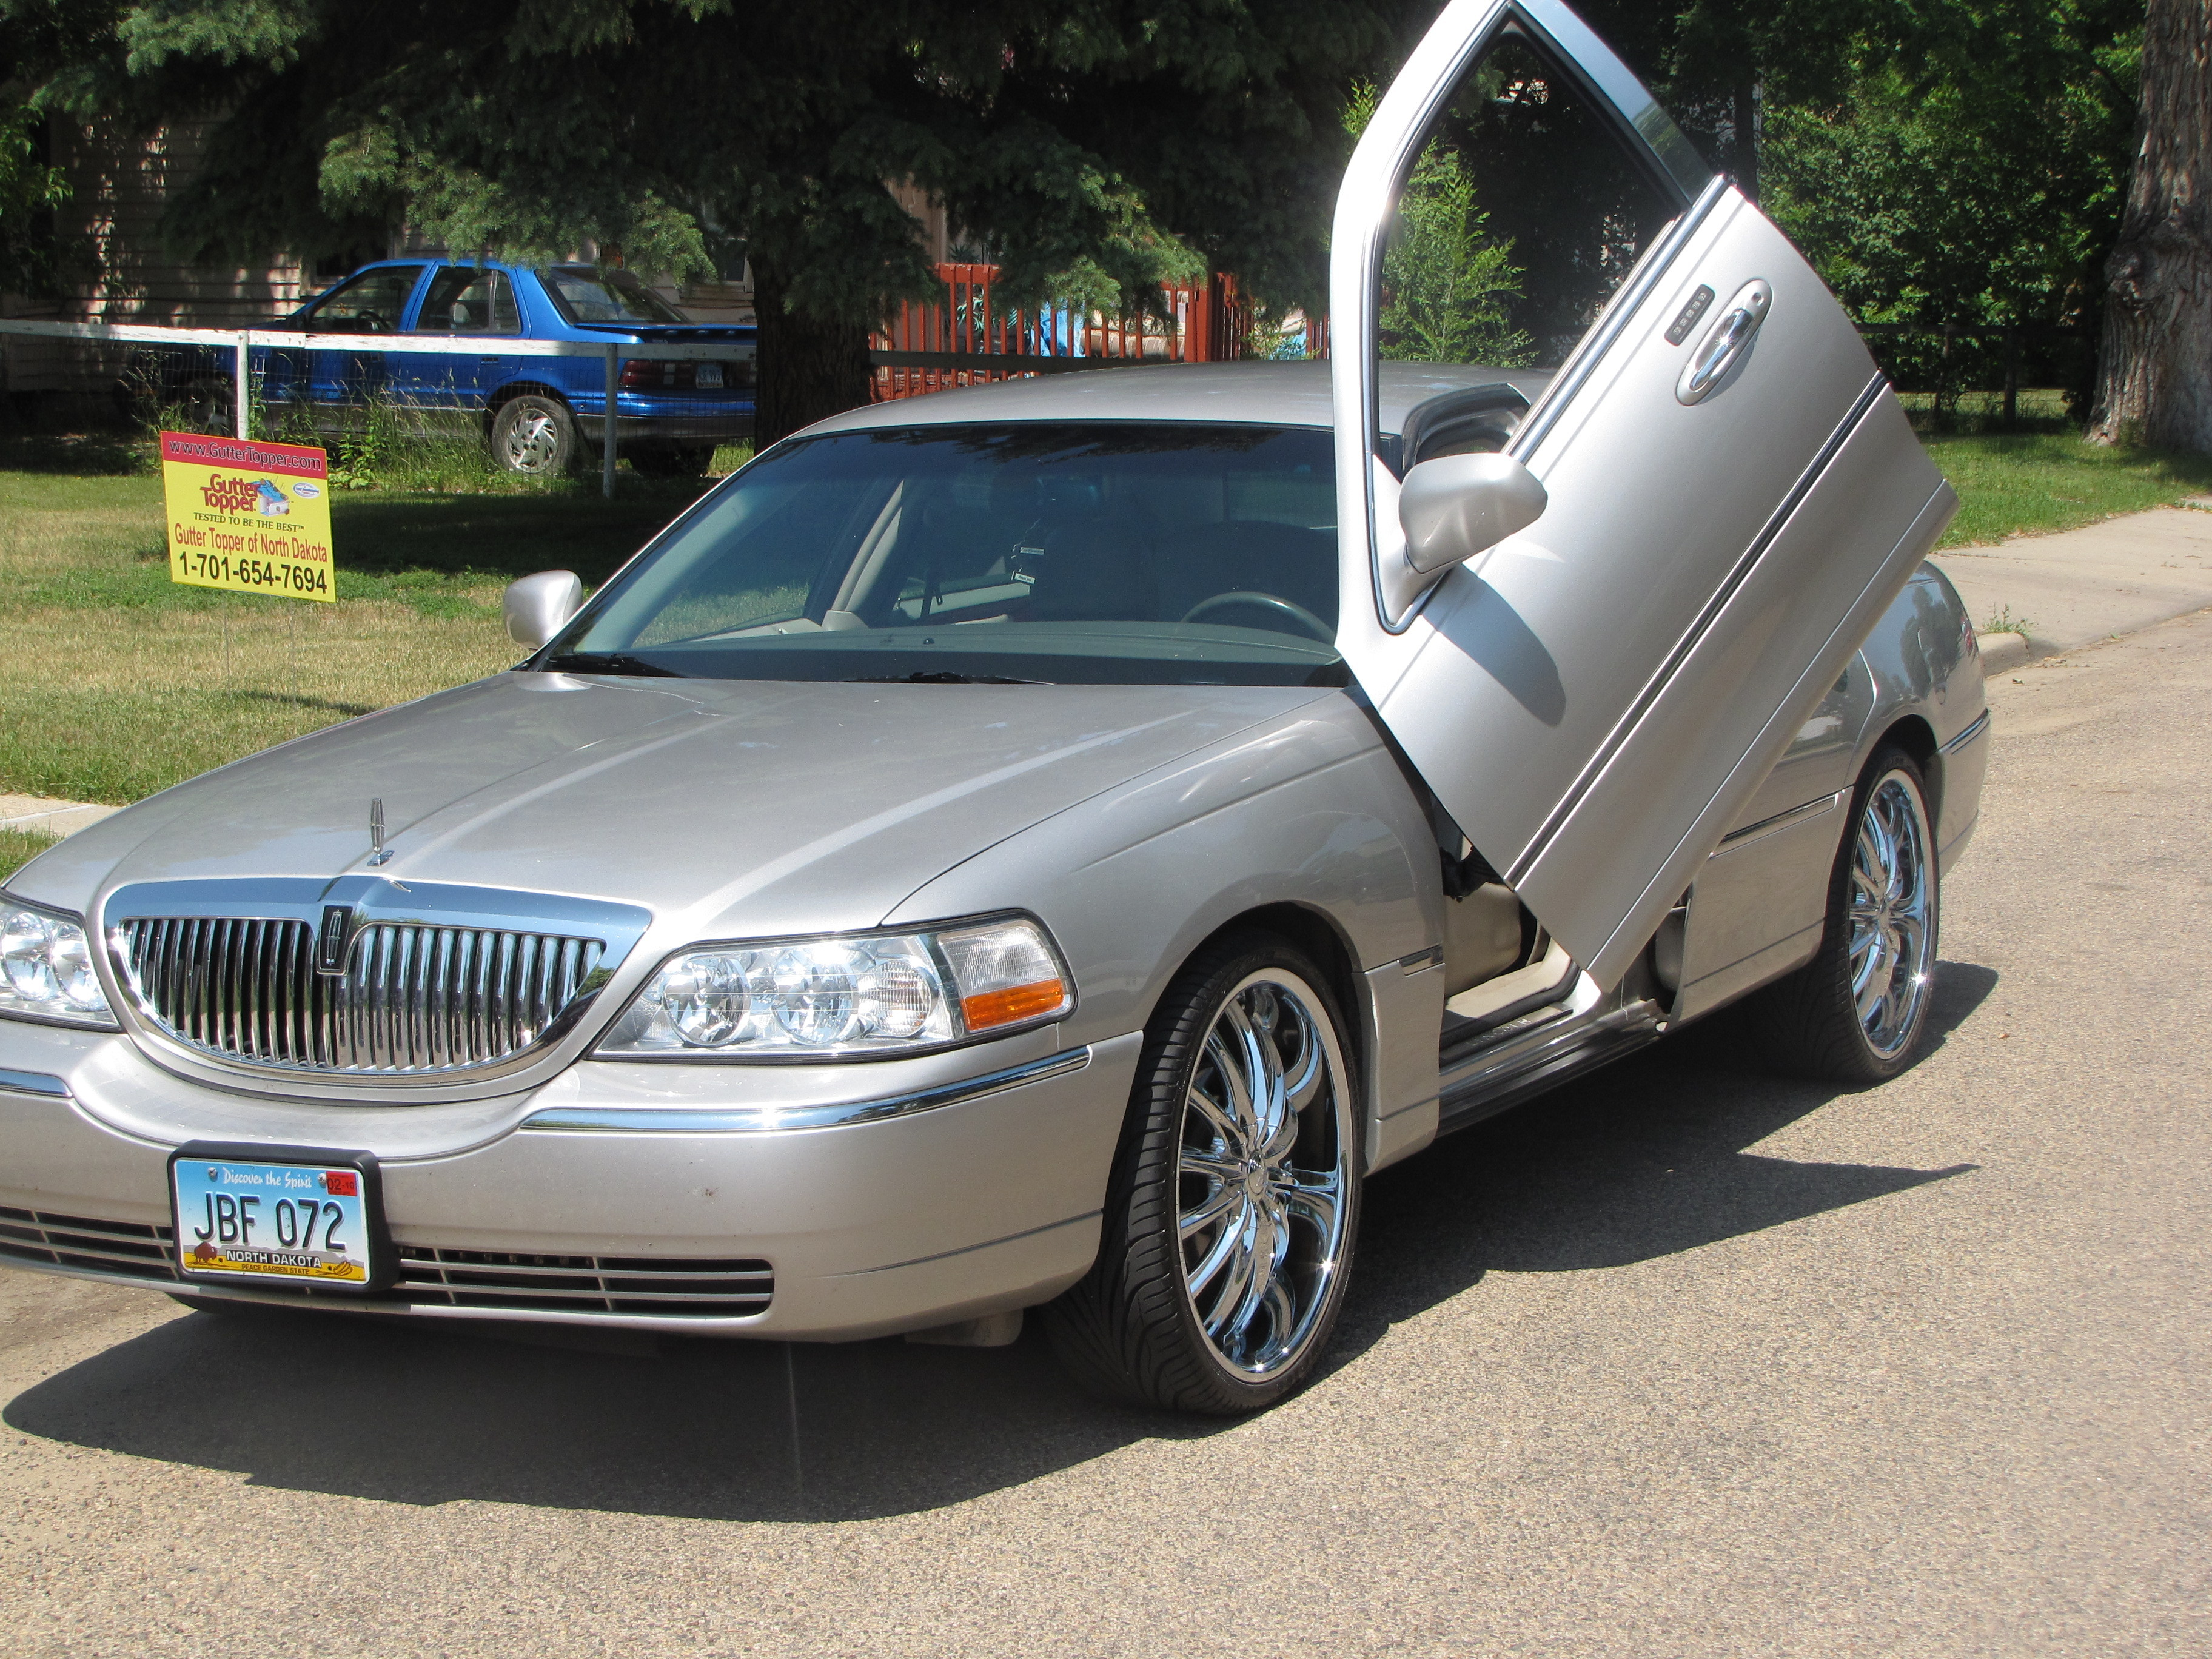 Volkswagen Of Marion >> 03LINCOLNLOVE 2003 Lincoln Town Car Specs, Photos, Modification Info at CarDomain